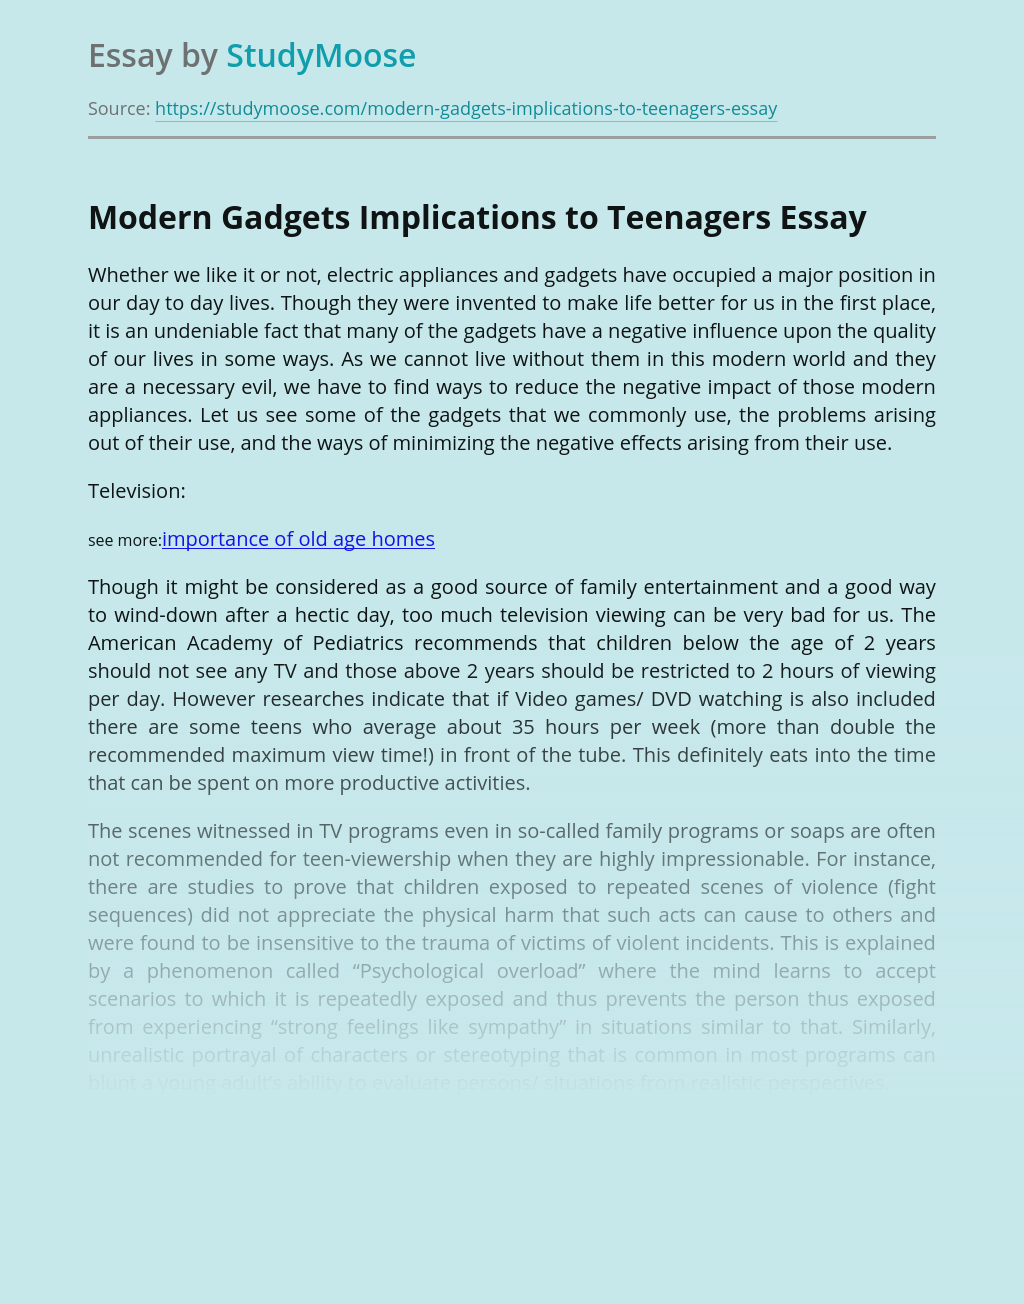 Modern Gadgets Implications to Teenagers